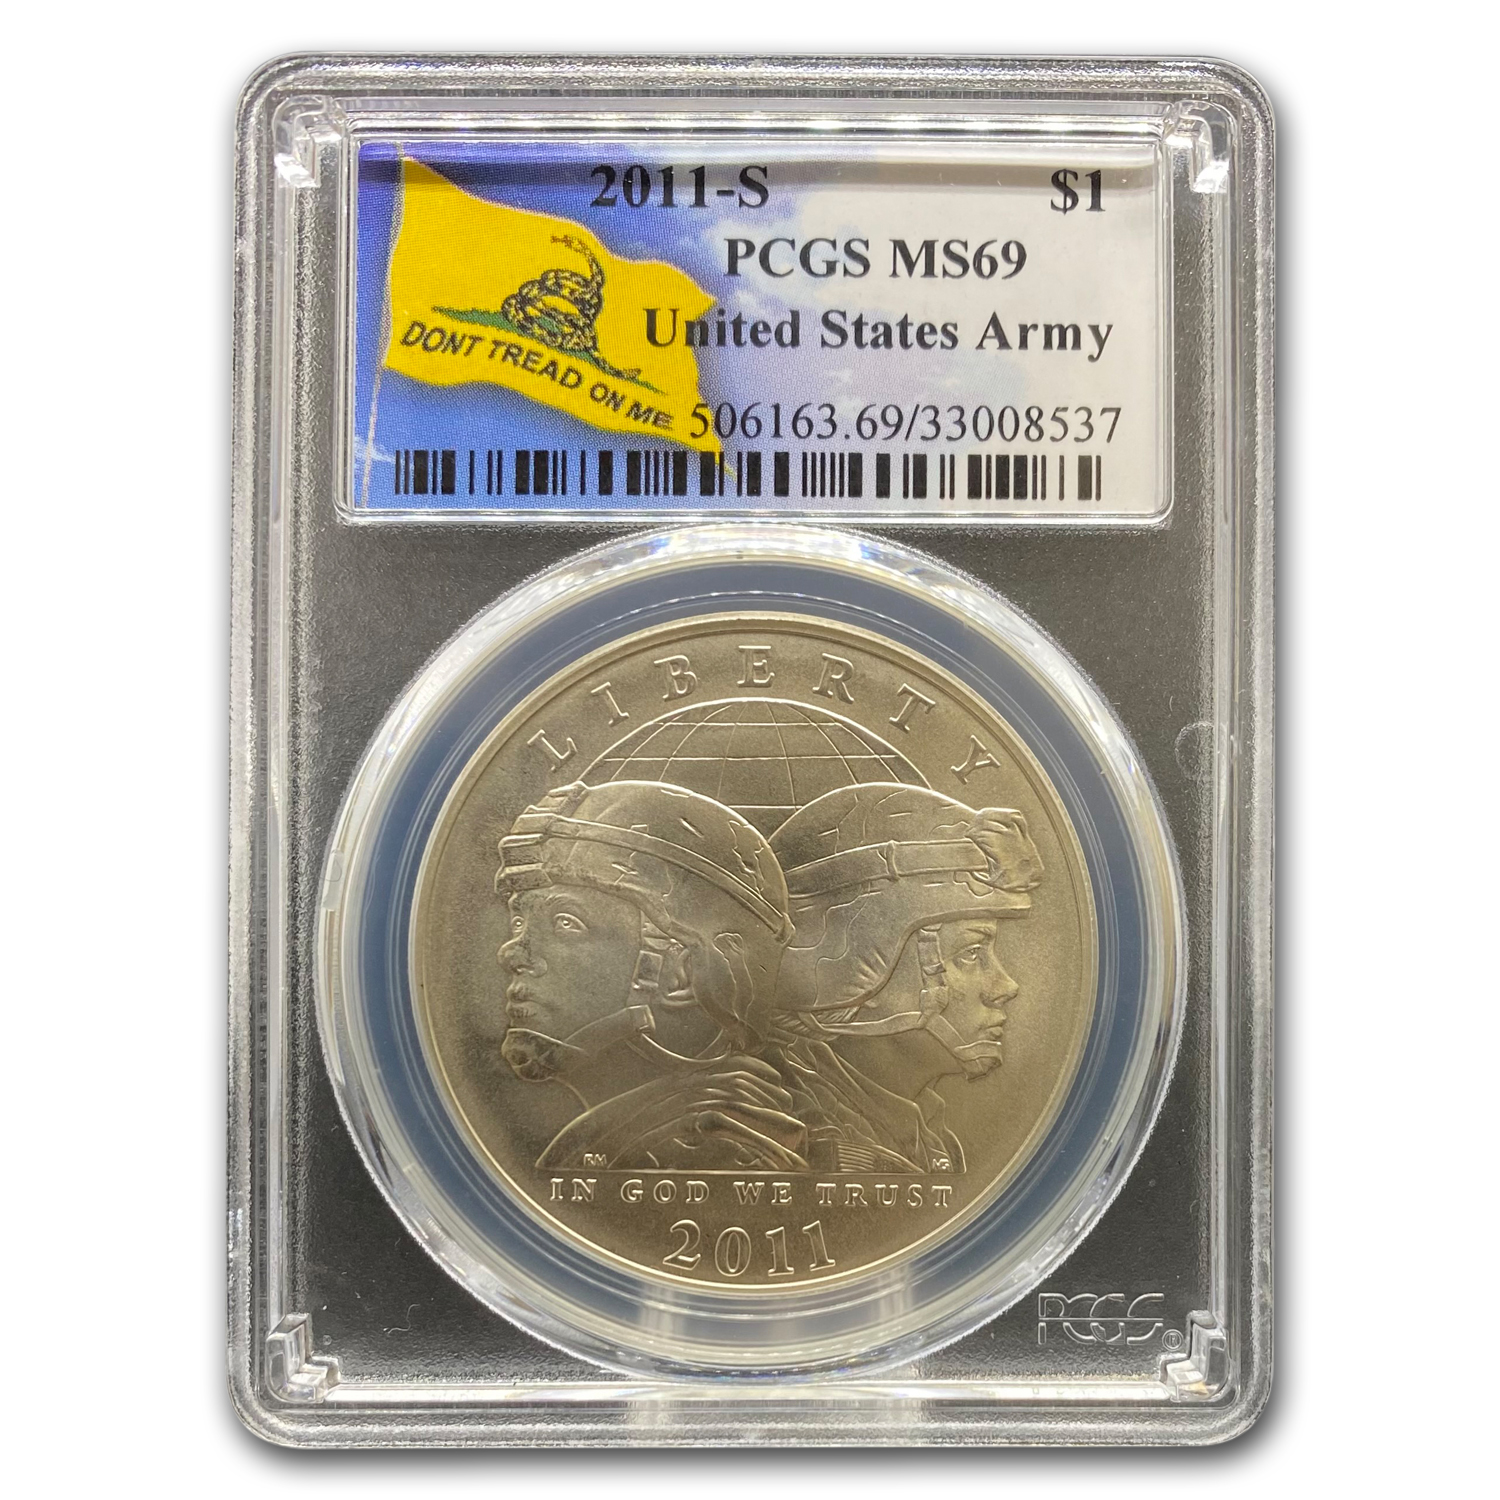 2011-S United States Army $1 Silver Commemorative MS-69 PCGS